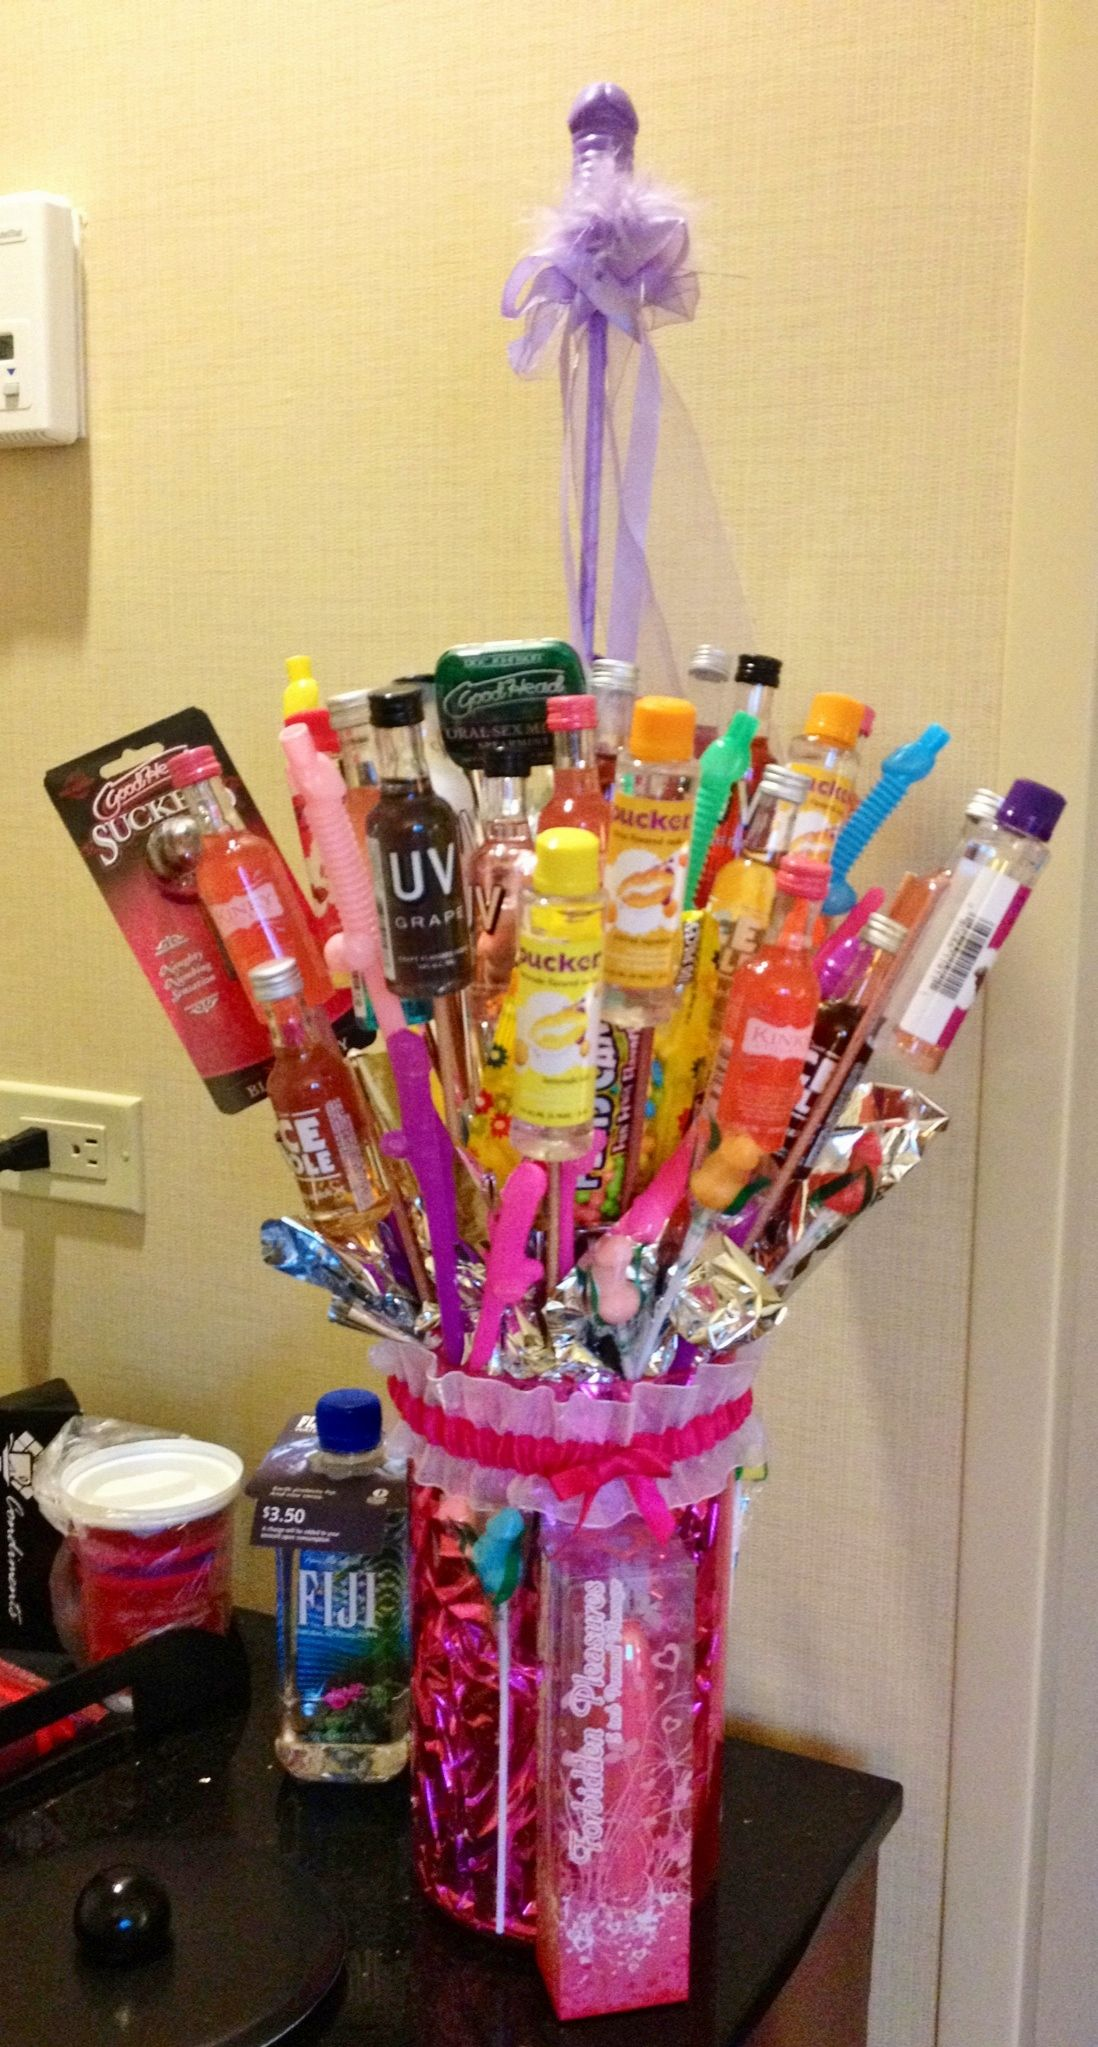 bachelorette bouquet of booze other naughty fun